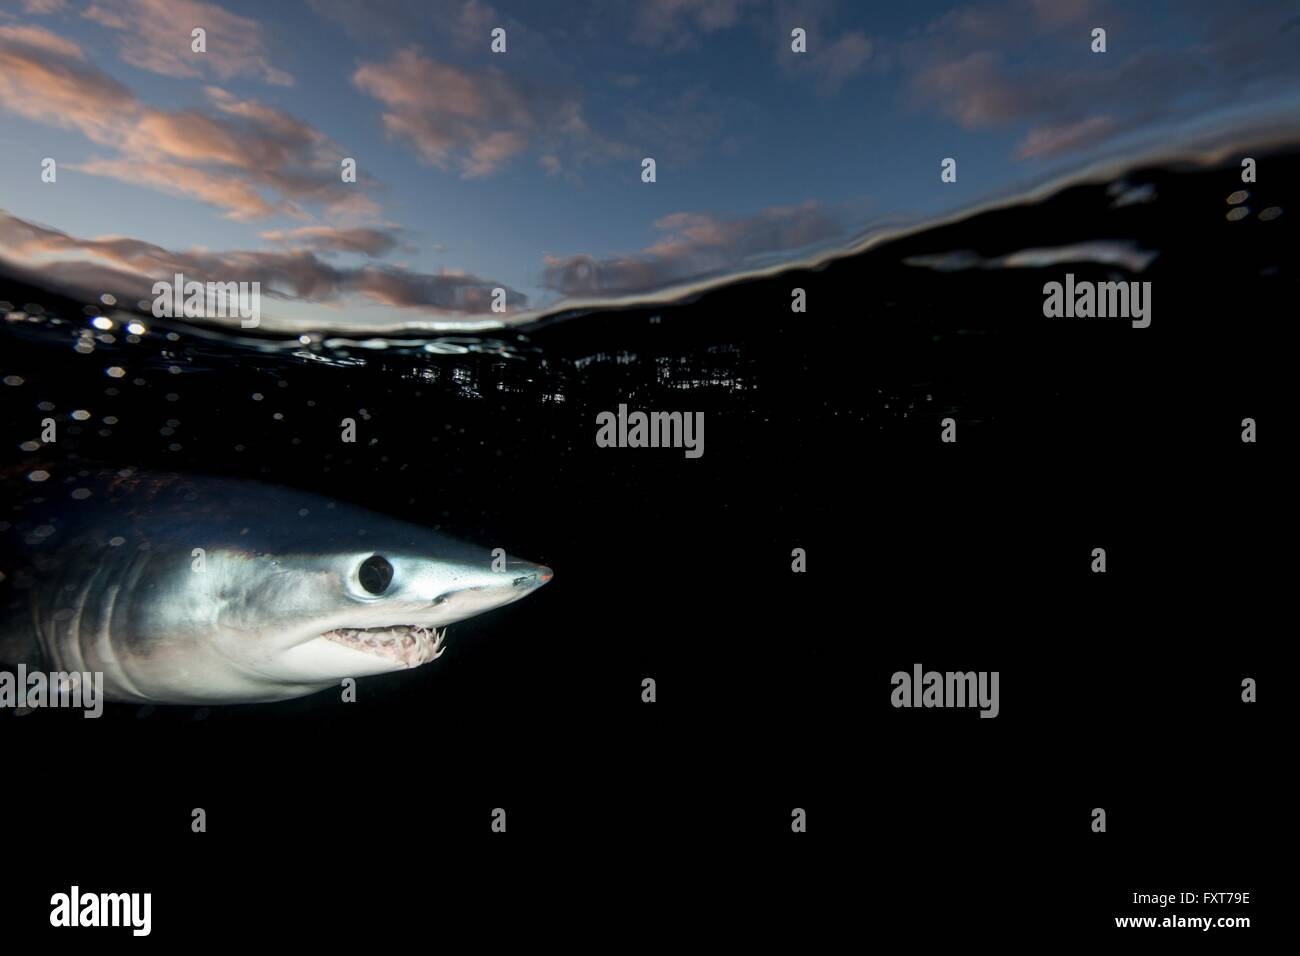 Underwater view of shortfin mako shark (Isurus oxyrinchus) swimming near dark sea surface, West Coast, New Zealand - Stock Image